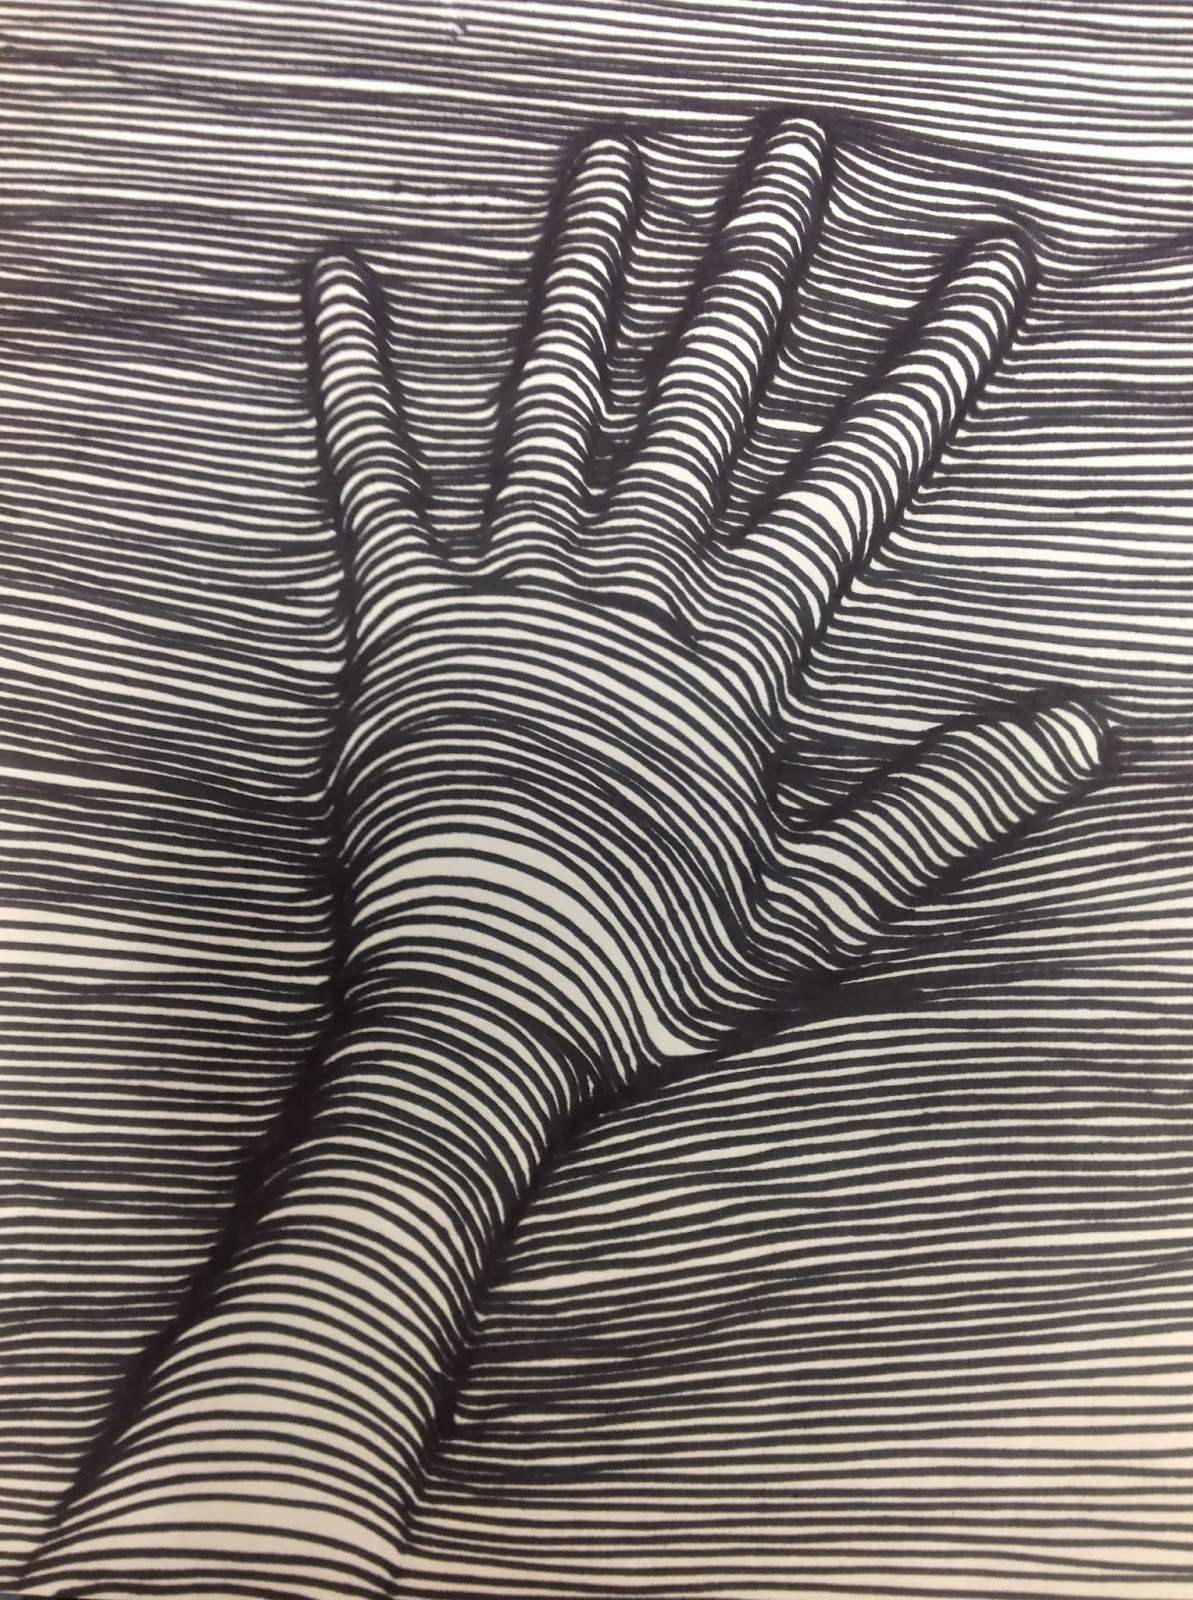 Cross Contour Line Drawing of a Hand